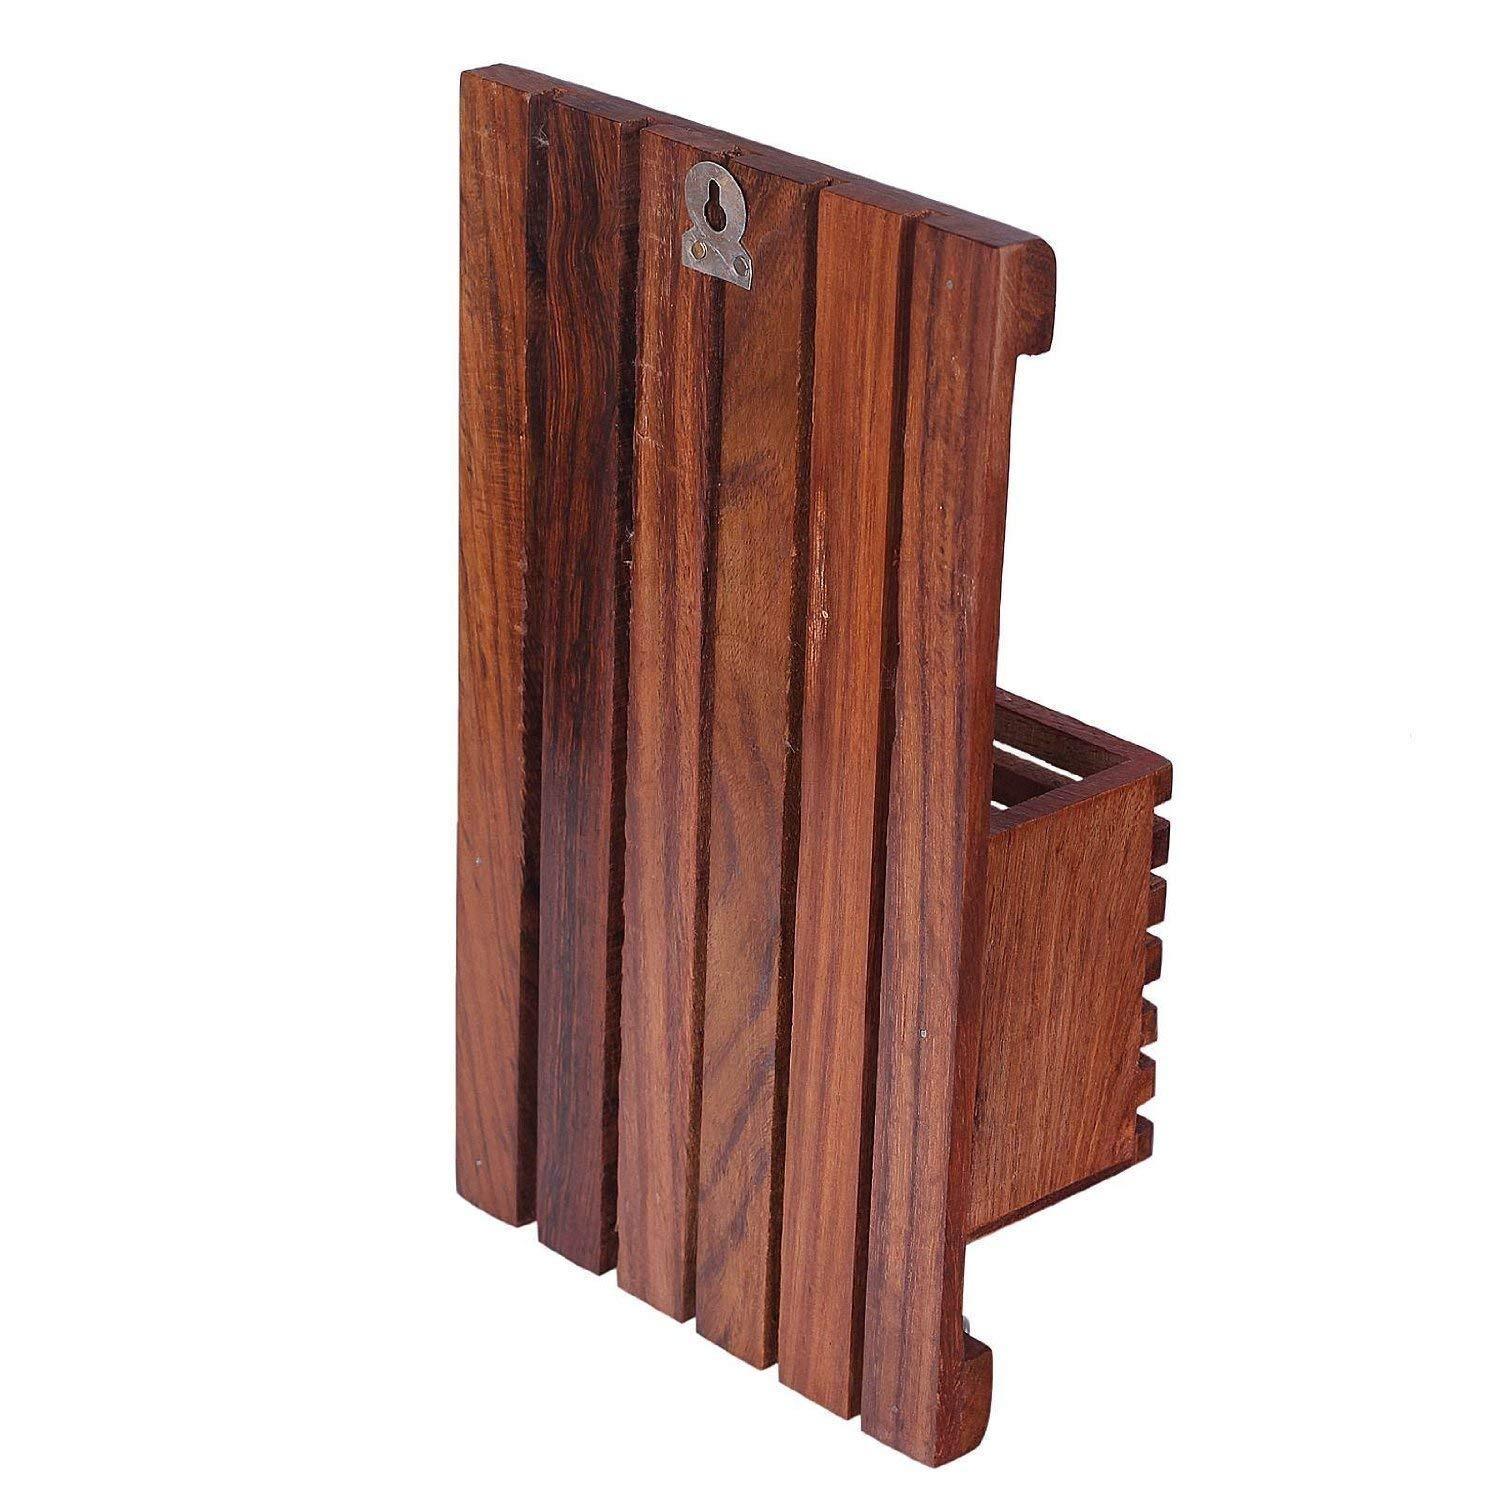 Amoones Wooden Key Holder for Home Office Bedroom Living Room